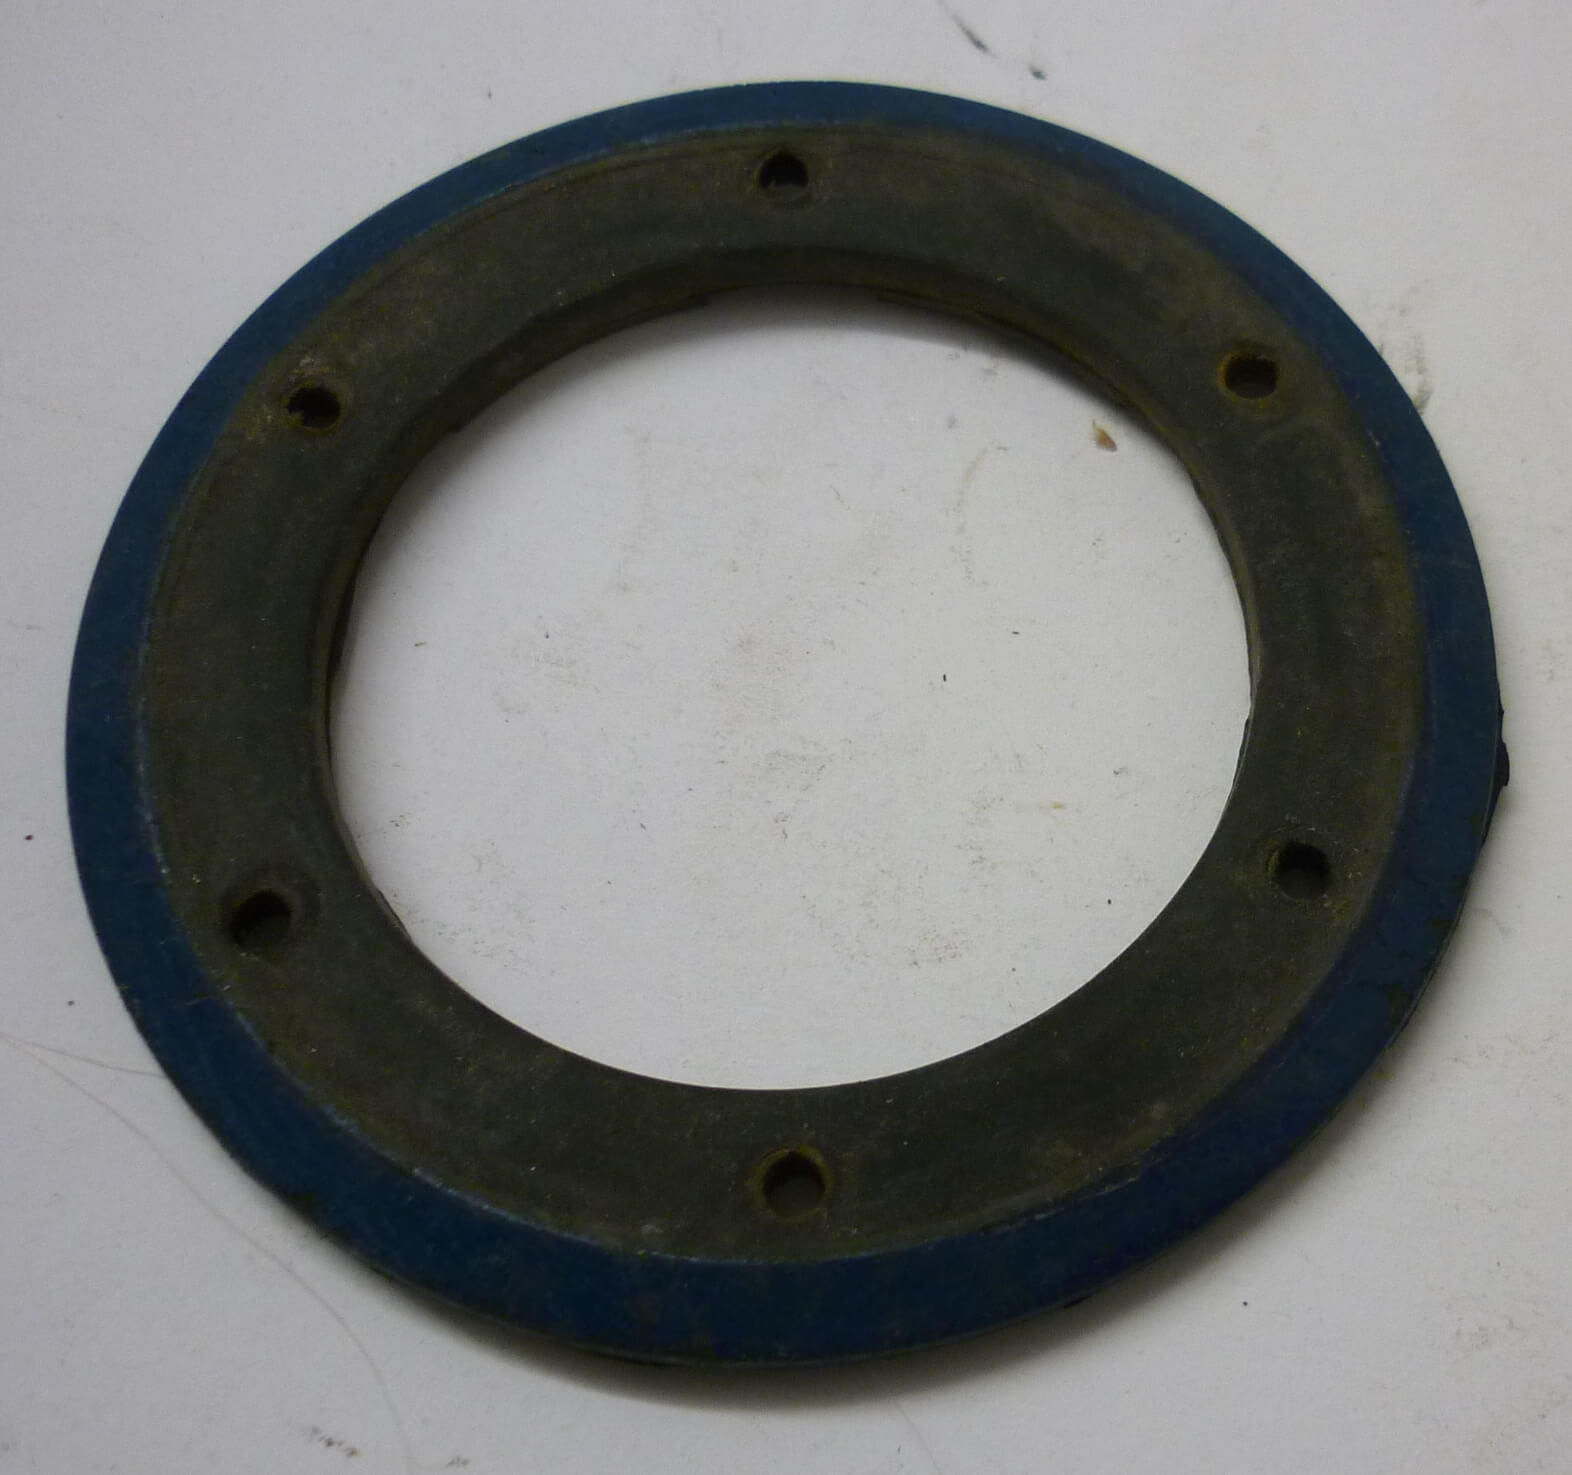 Horn gasket, black-blue, Vespa 125 / 150 / 180 / 200, used